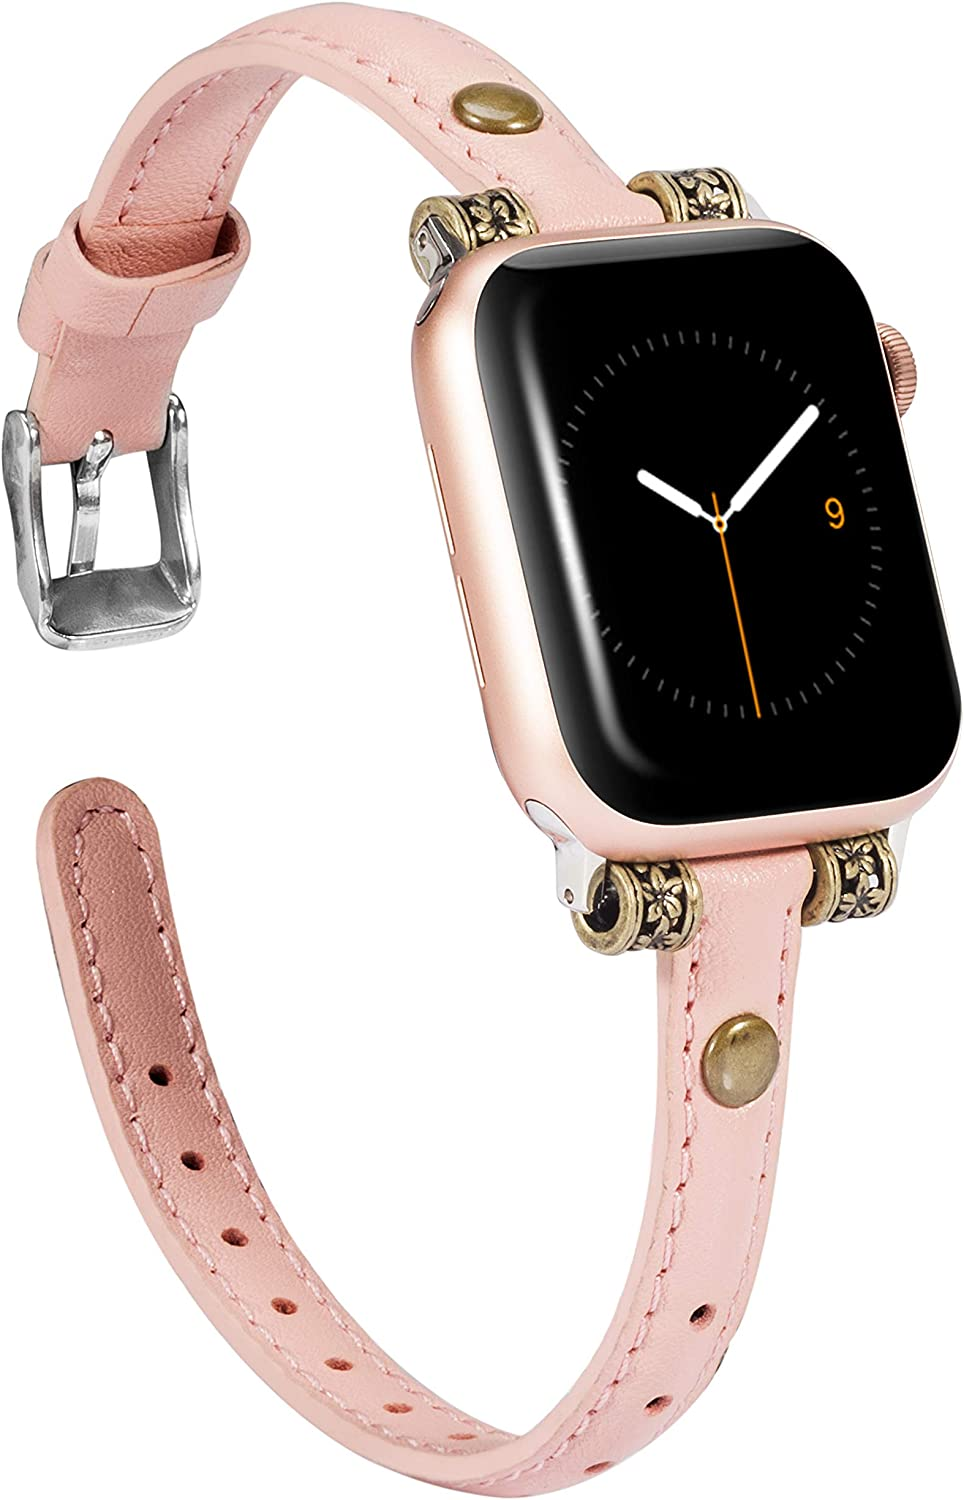 Wearlizer Leather Bands Compatible with Apple Watch Band 38mm 40mm for iWatch Womens Mens Special Slim Vintage Wristband Replacement Strap SE Series 6 5 4 3 2 1 Edition - Pink